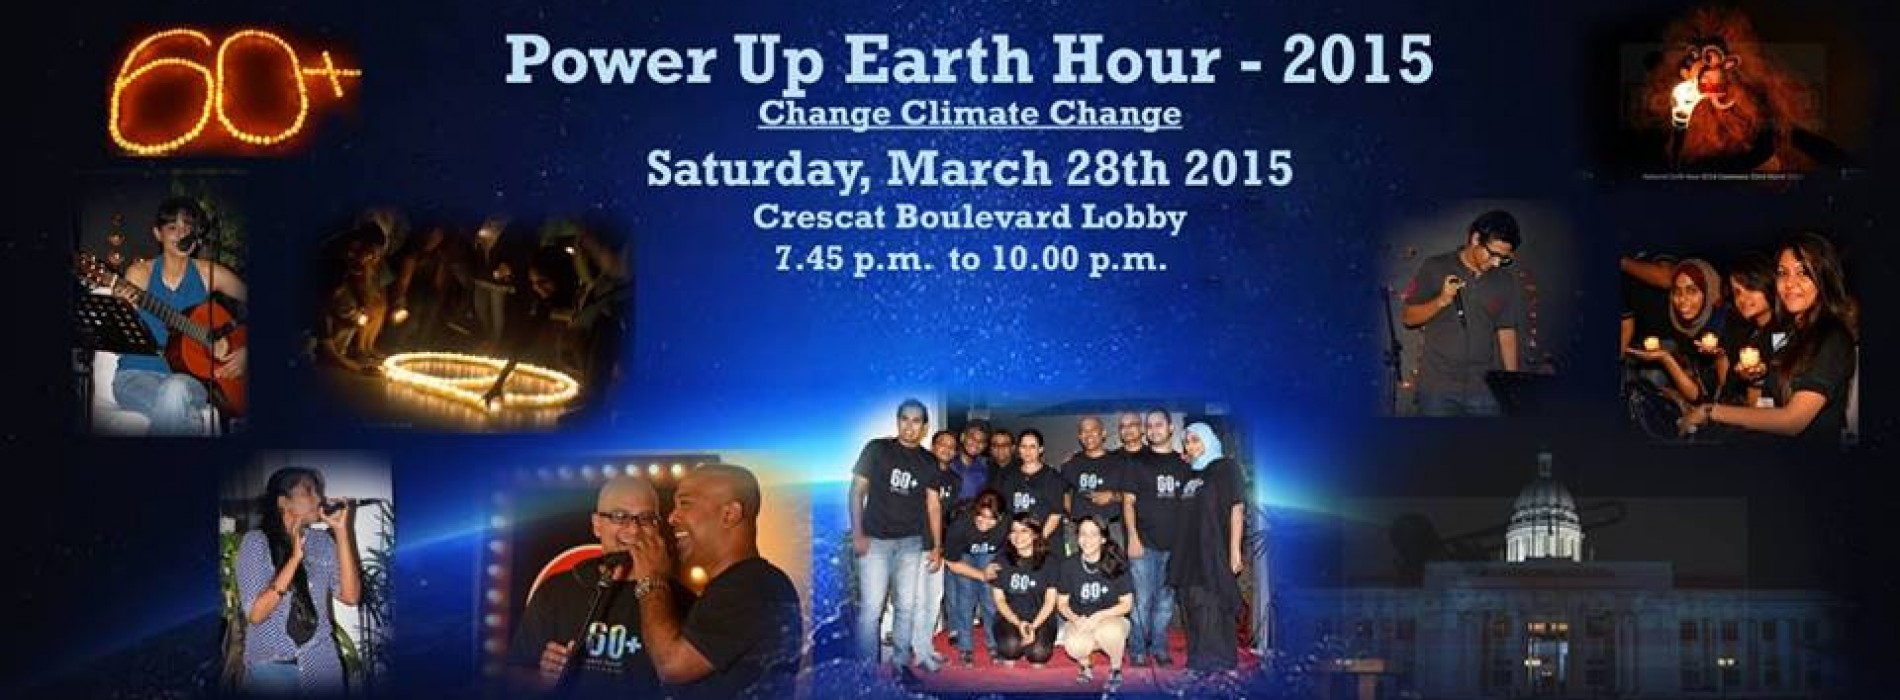 Power Up Earth Hour – 2015